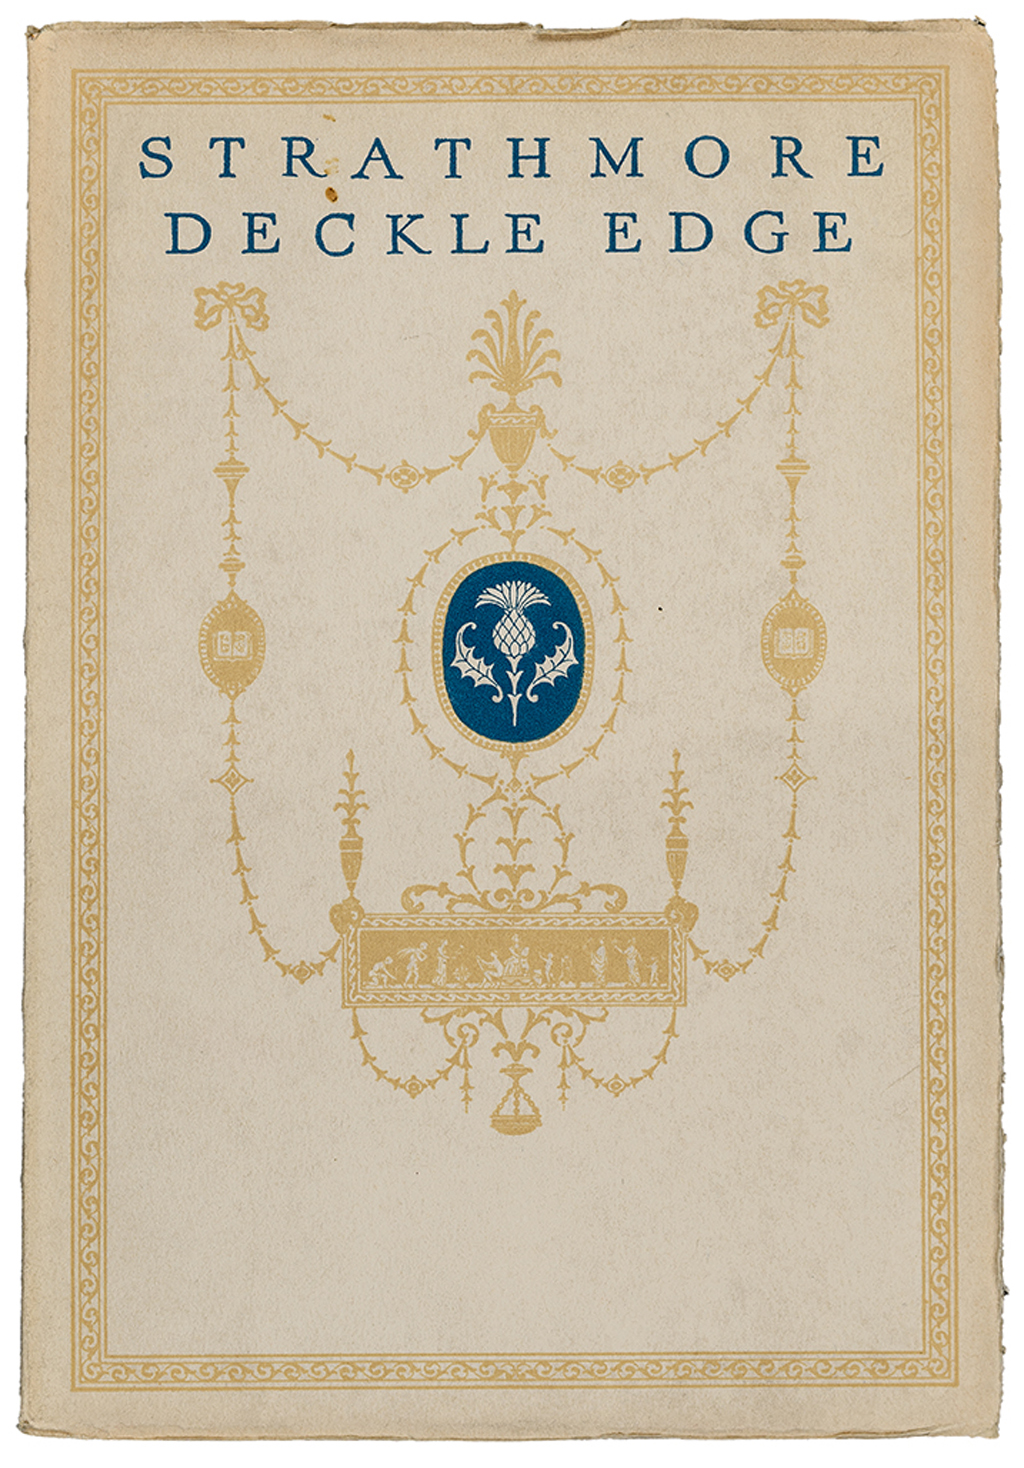 Strathmore Deckle Edge sample book (Strathmore Paper Co., 1925). Design probably by T.M. Cleland. Photograph by Vincent Trinacria.